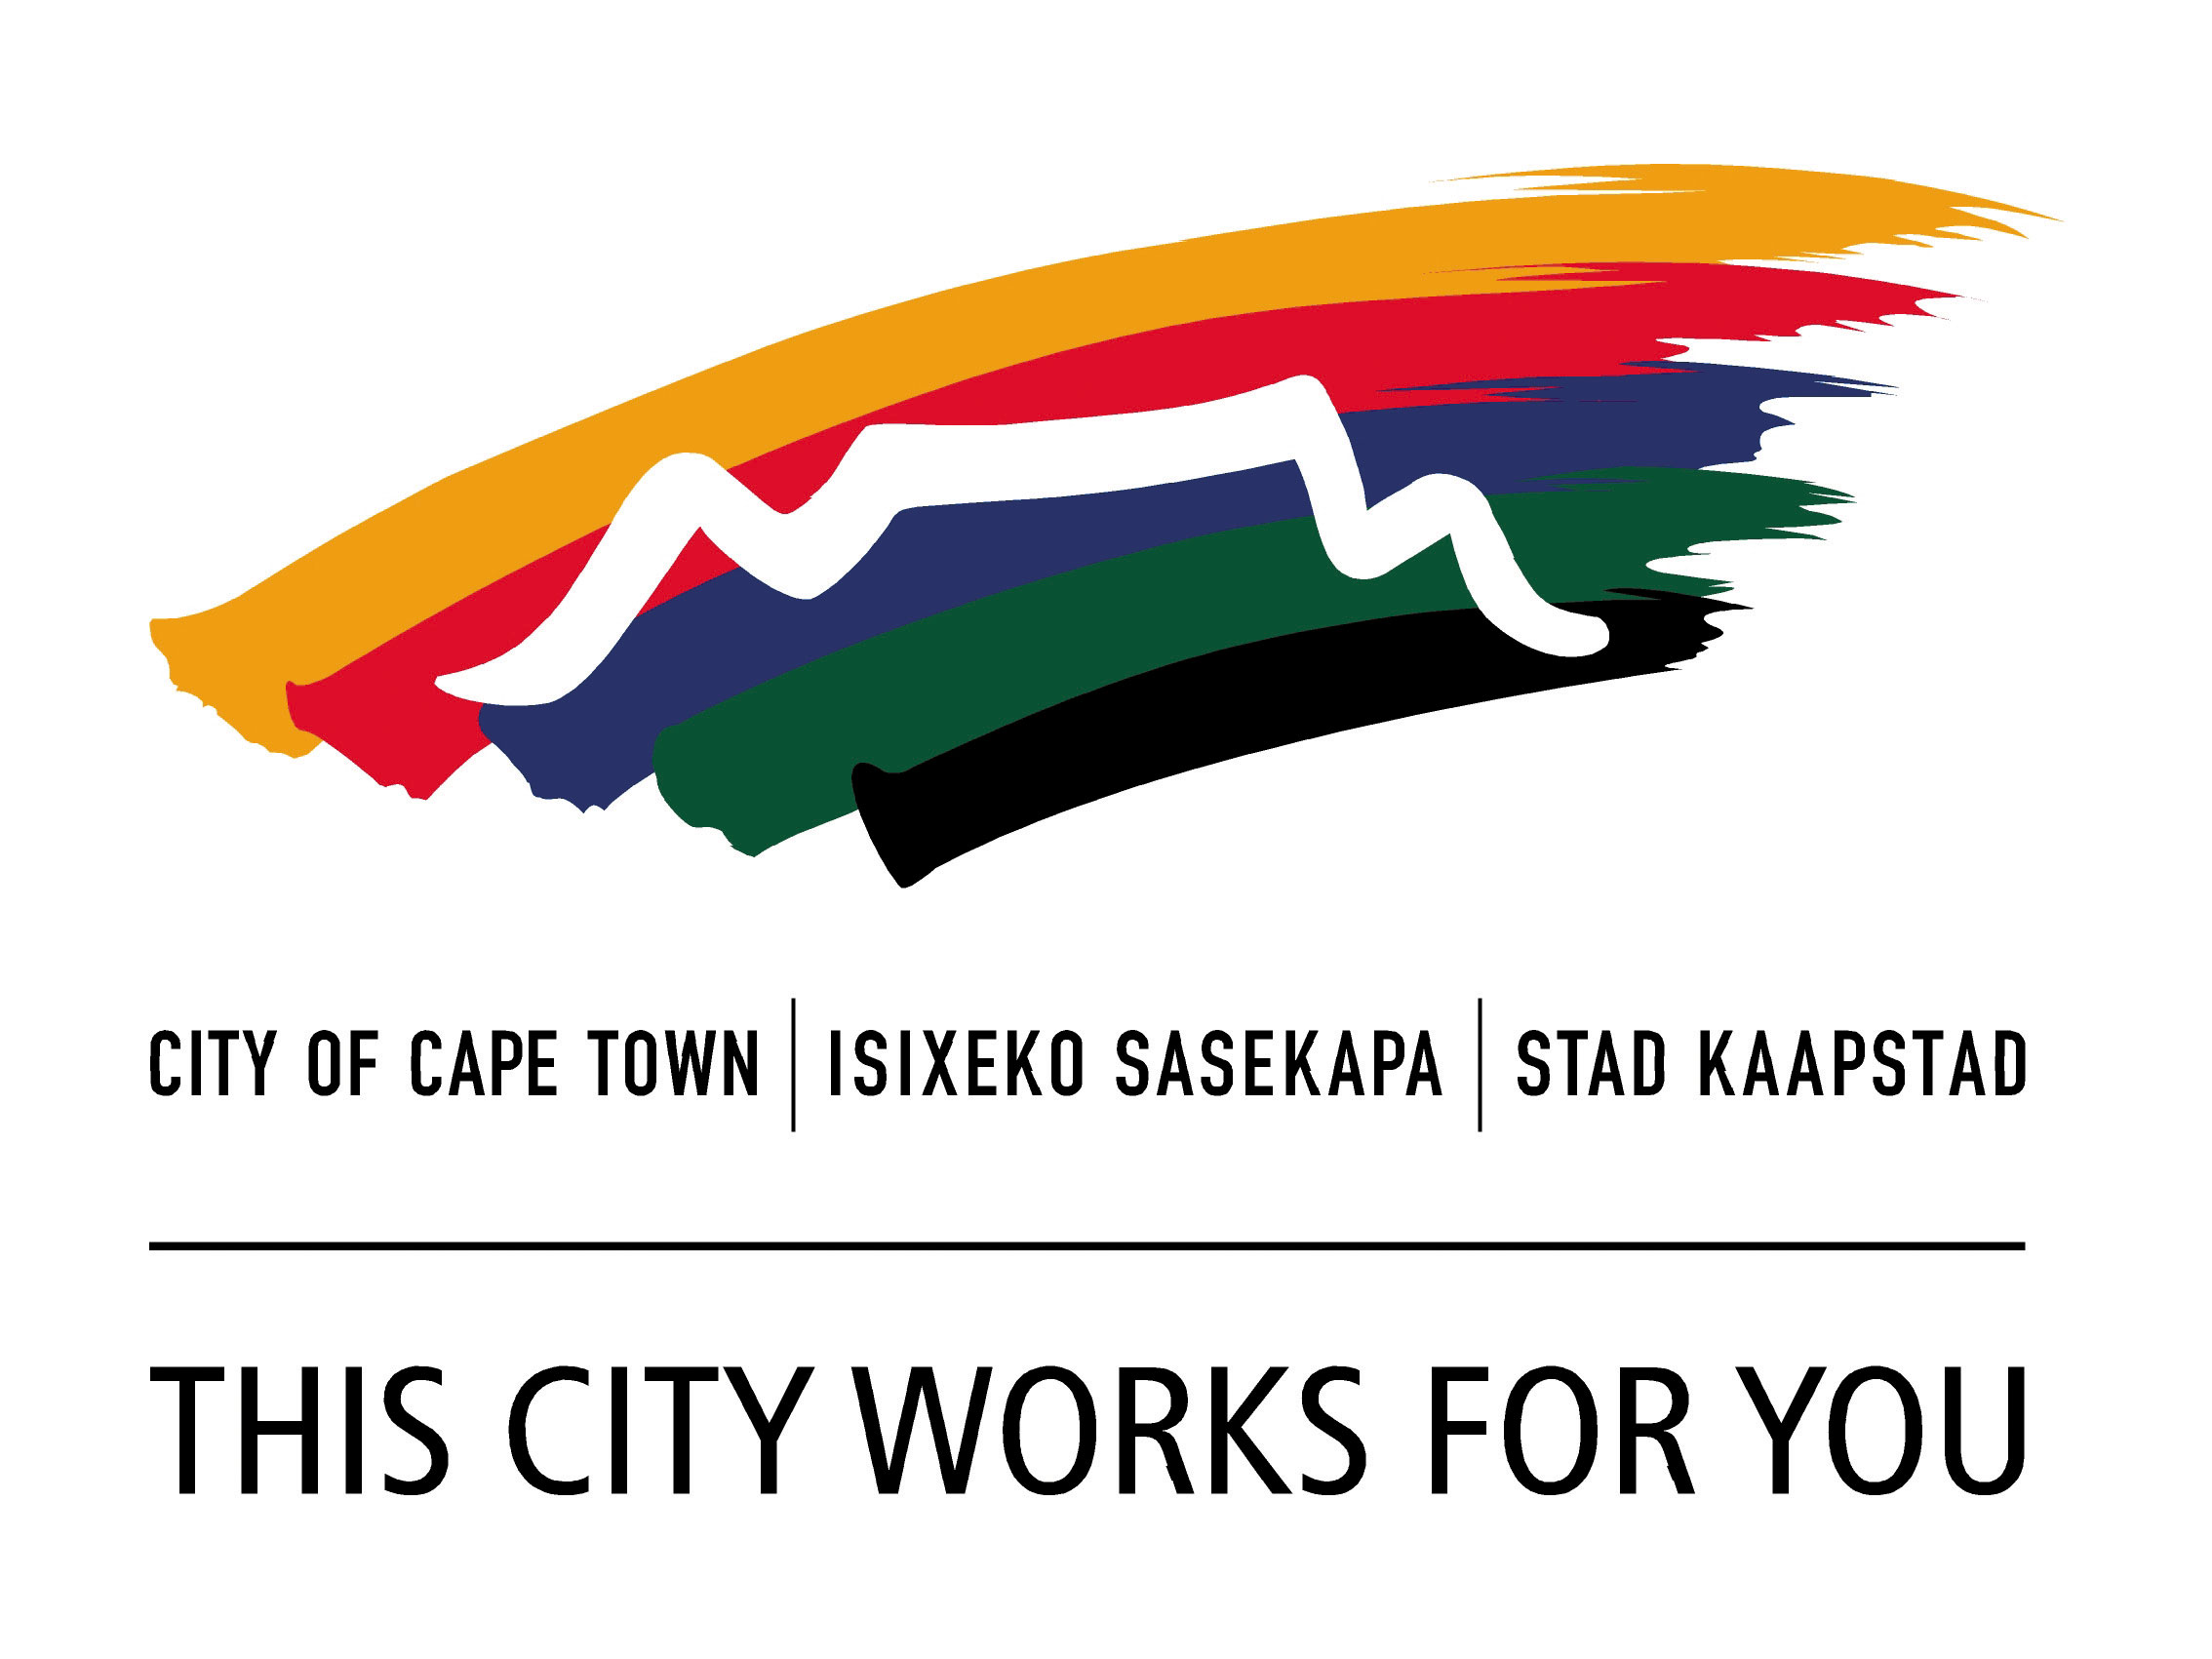 City Of Cape Town: IMATU OPPOSES RETRENCHMENTS IN CAPE TOWN